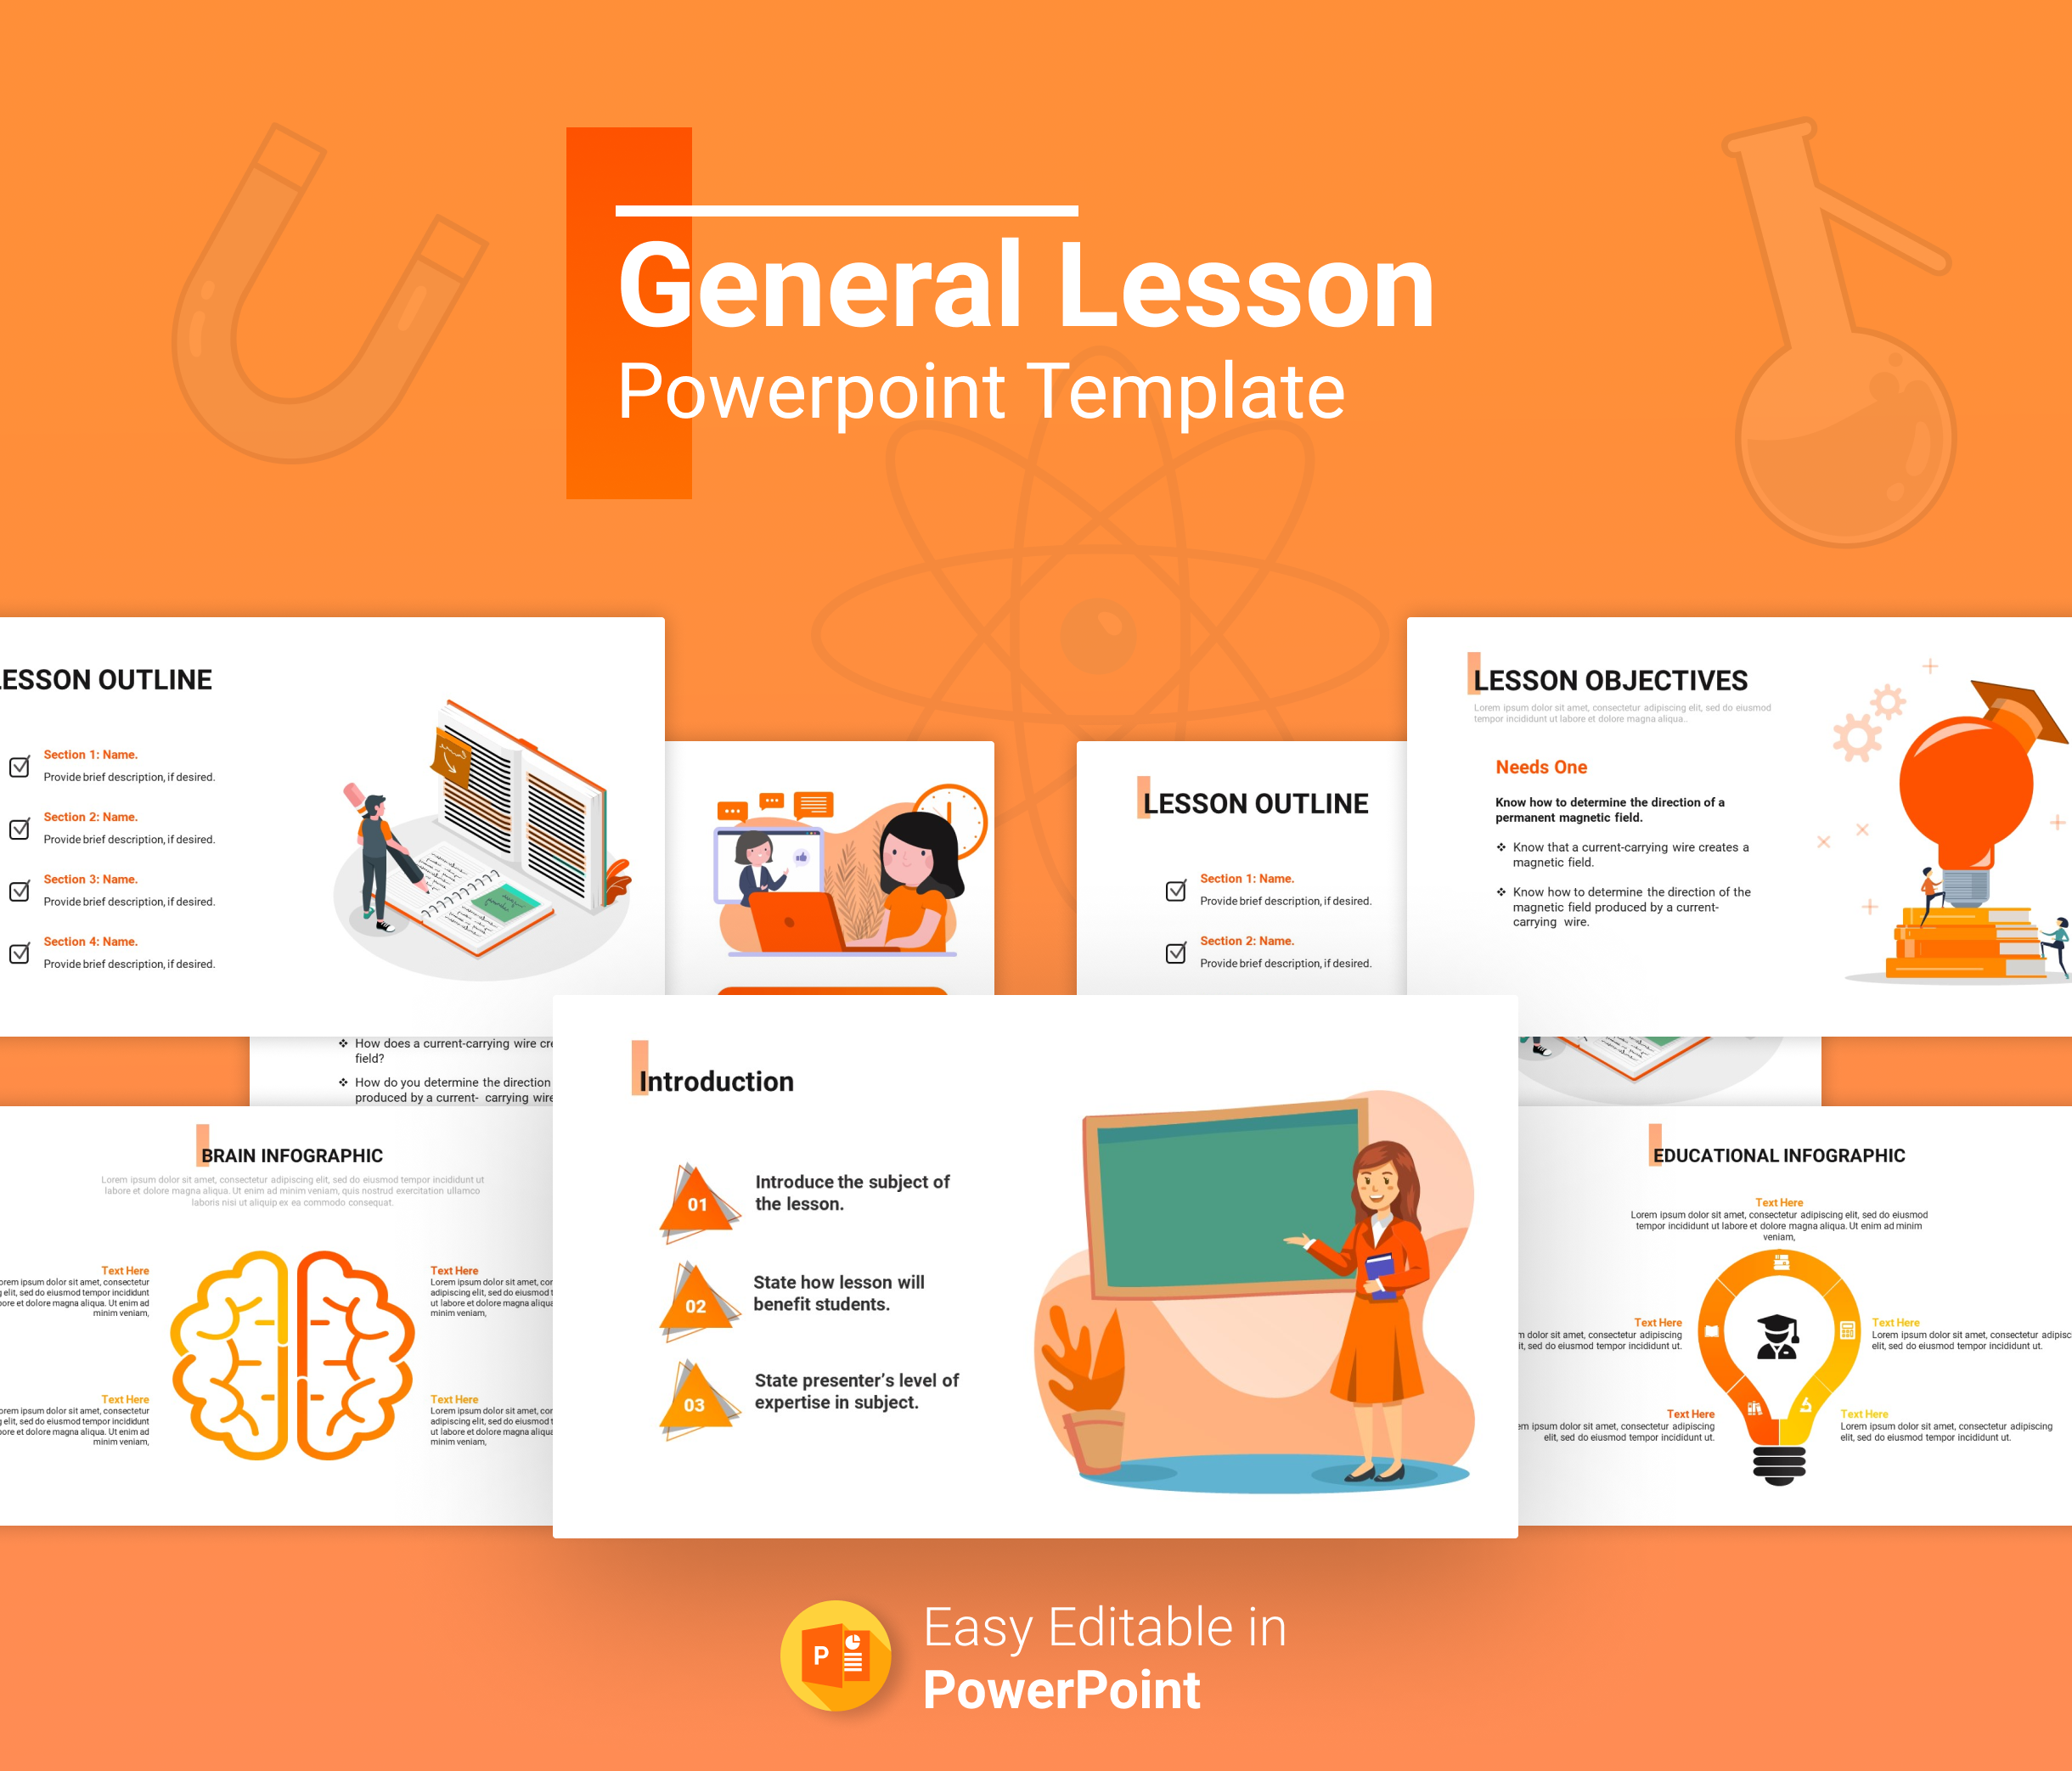 General Lesson Plan PowerPoint Presentation for teachers & students